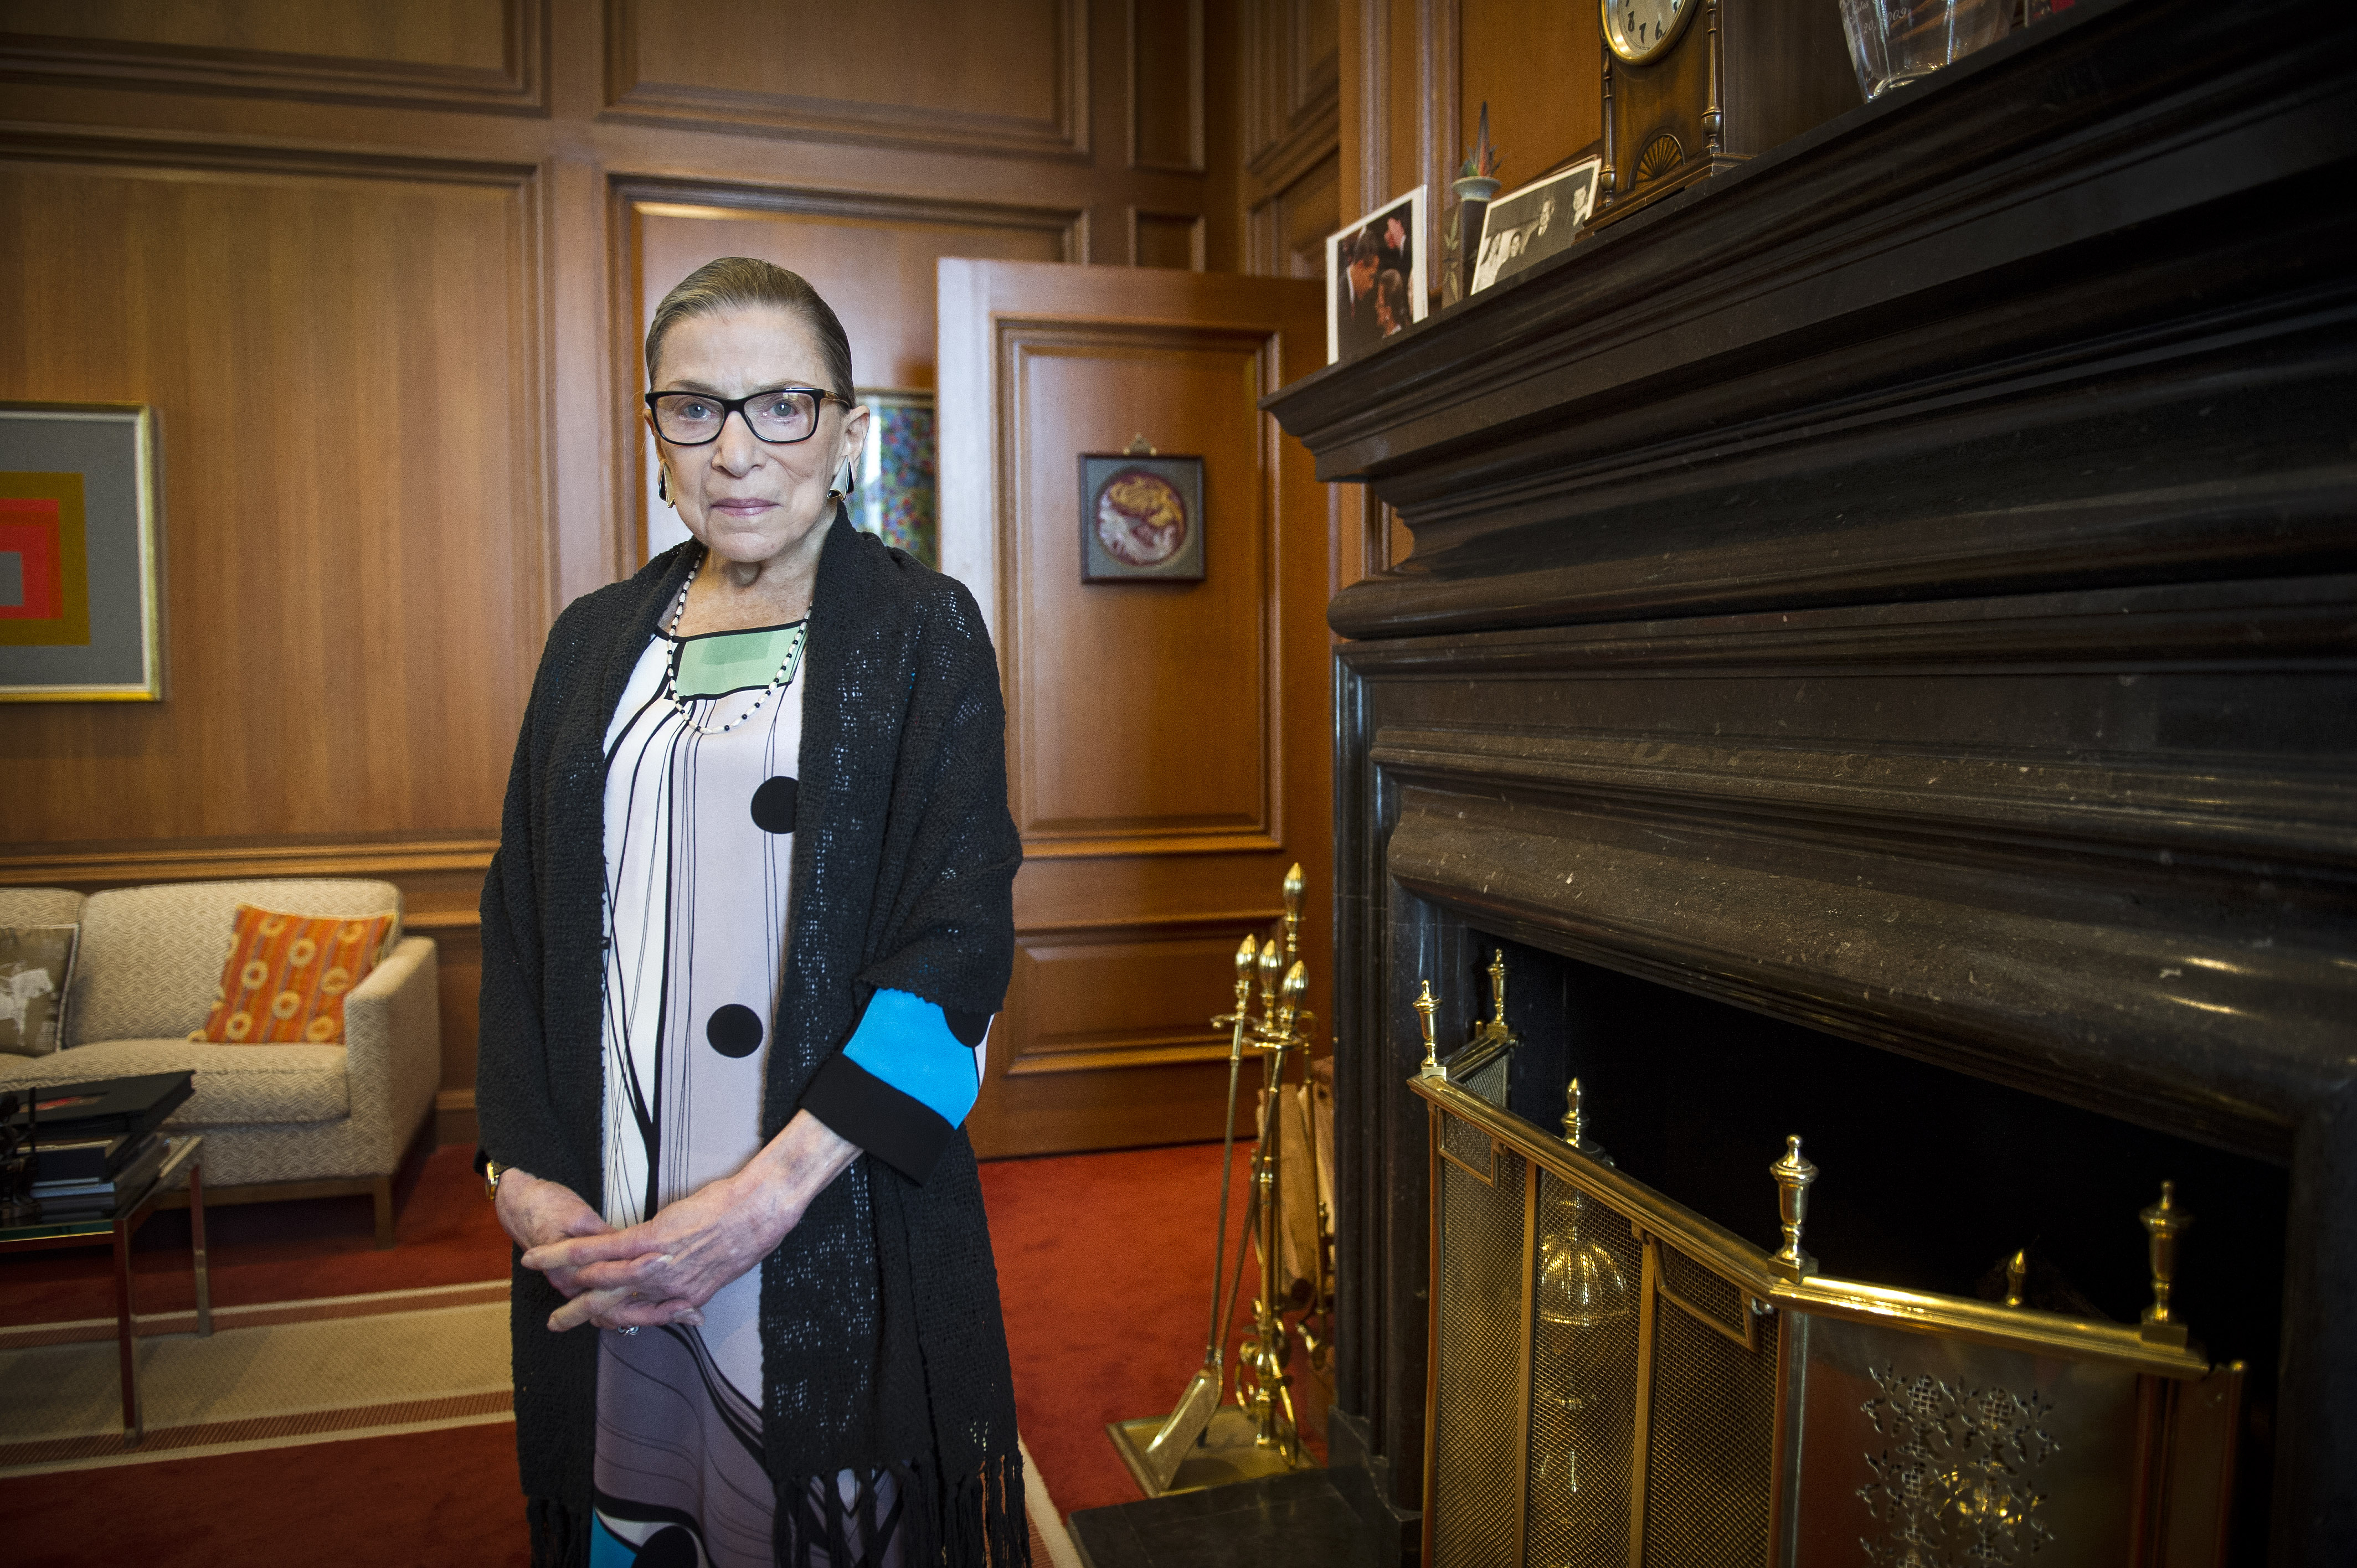 FILE - In this July 31, 2014, file photo, Associate Justice Ruth Bader Ginsburg is seen in her chambers in at the Supreme Court in Washington. The Supreme Court says Ginsburg has died of metastatic pancreatic cancer at age 87. Photo: AP